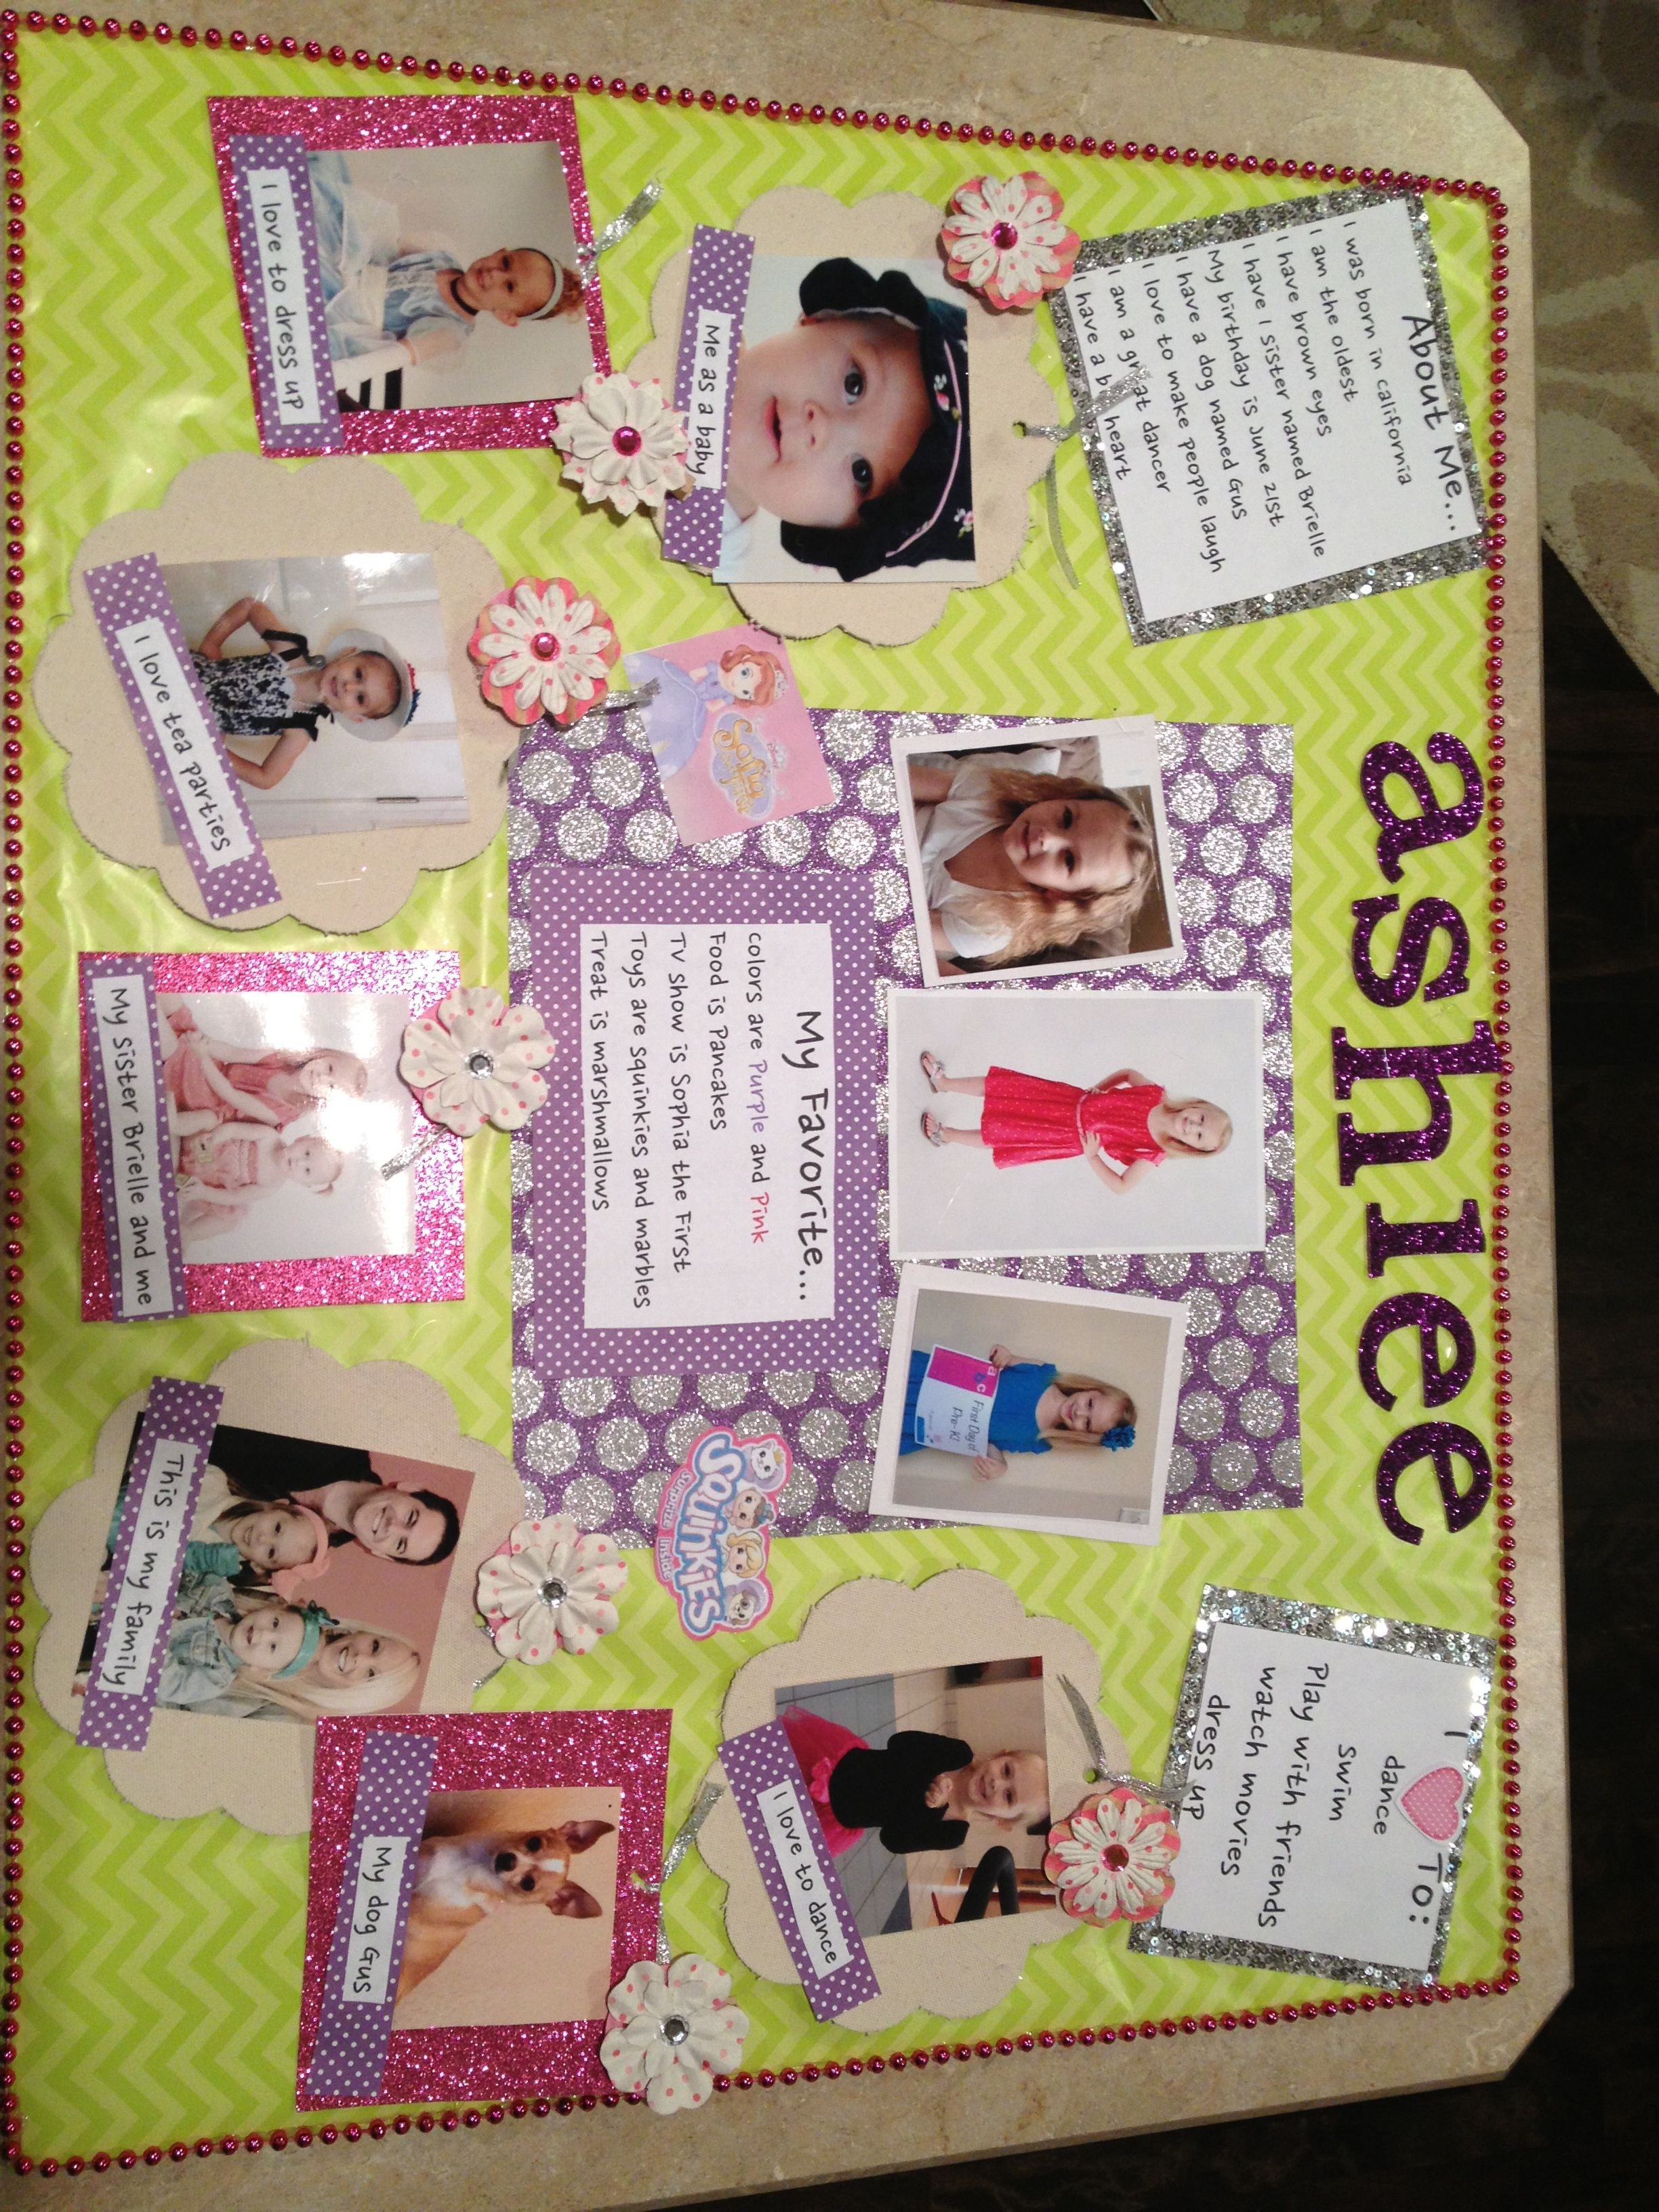 How to make scrapbook for school project - Fun All About Me Poster For School